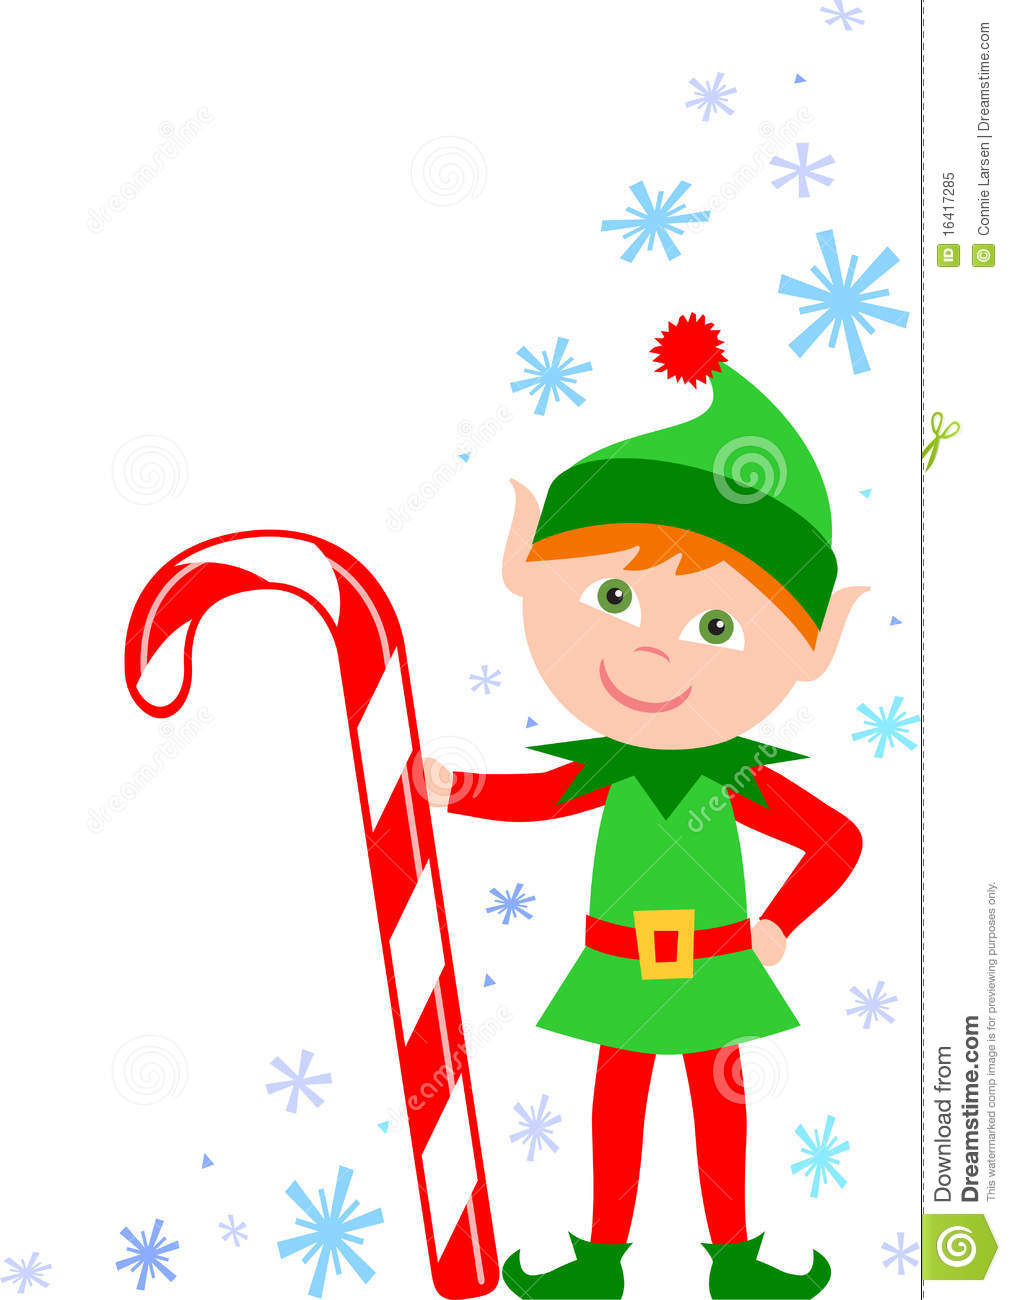 Illustration of a cute Christmas elf with a candy cane...one of a set ...